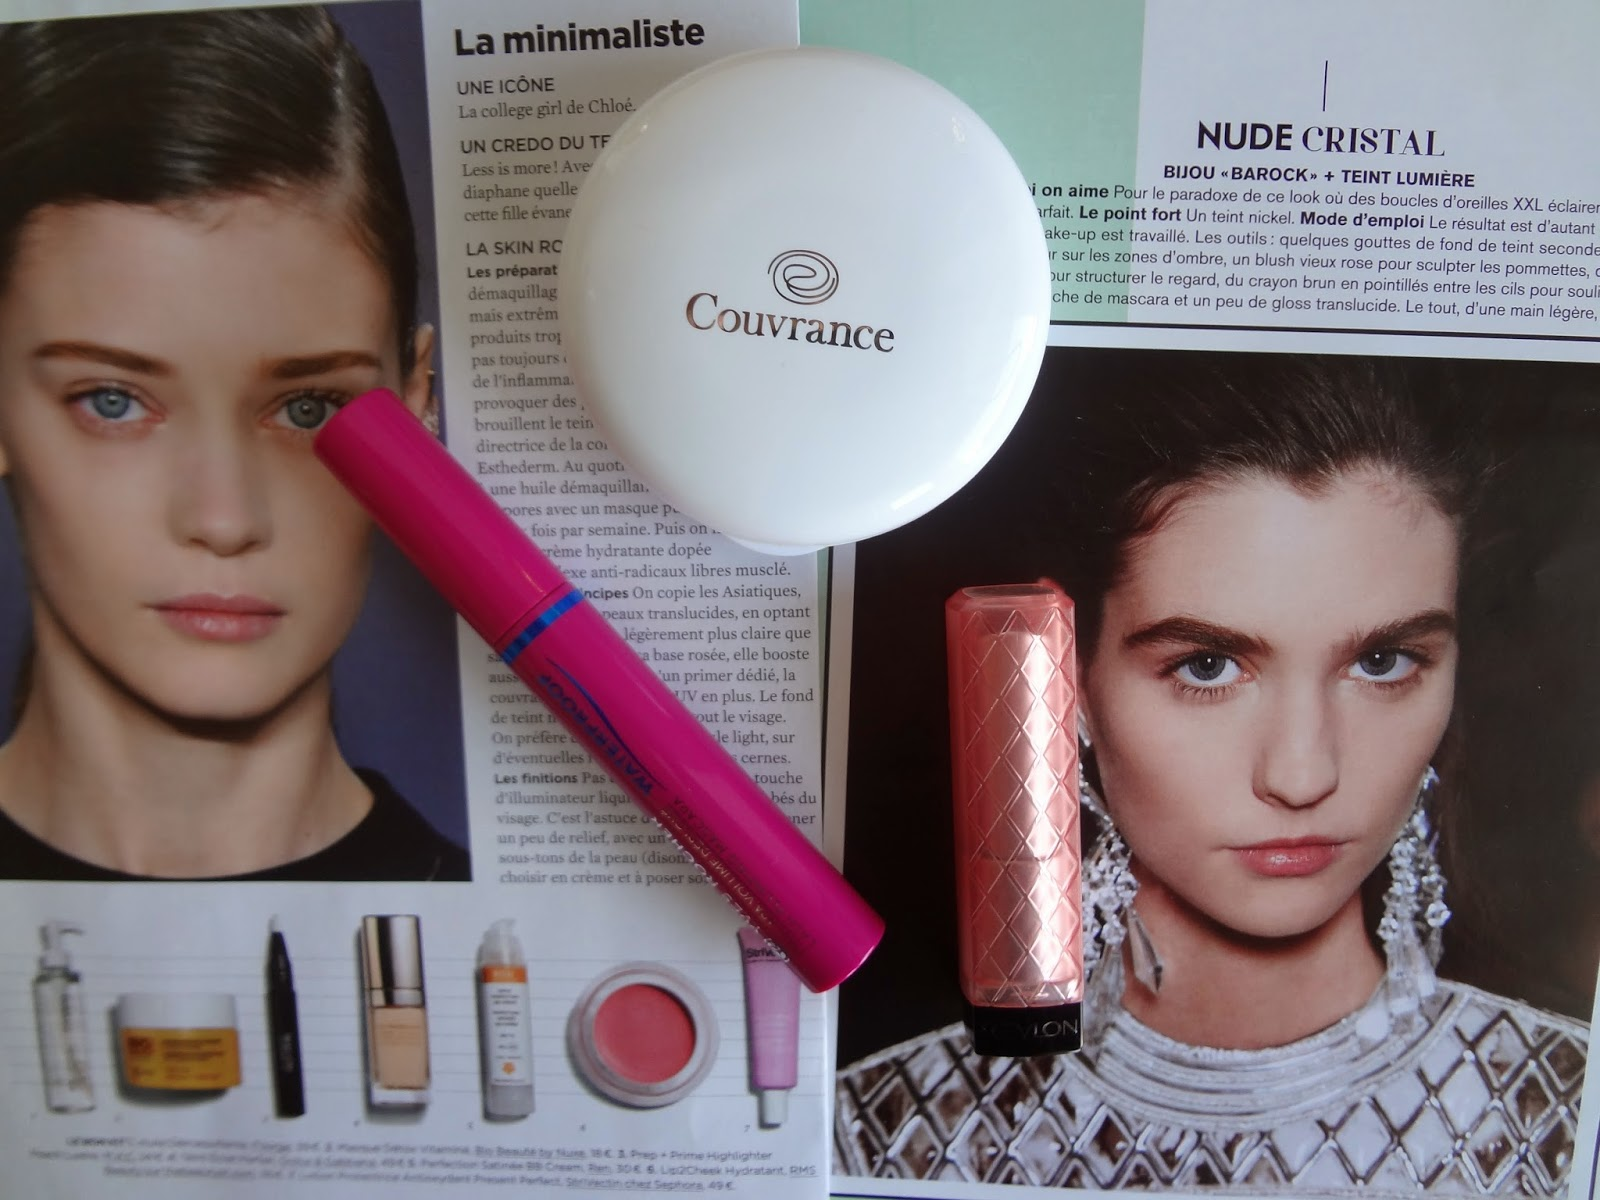 routine-make-up-maquillage-simple-facile-couvrance-avene-oil-free-compact-fond-teint-foundation-naturel-mascara-waterproof-yves-rocher-volume-deploye-revlon-lipbutter-peach-parfait-baume-teinte-ete-summer